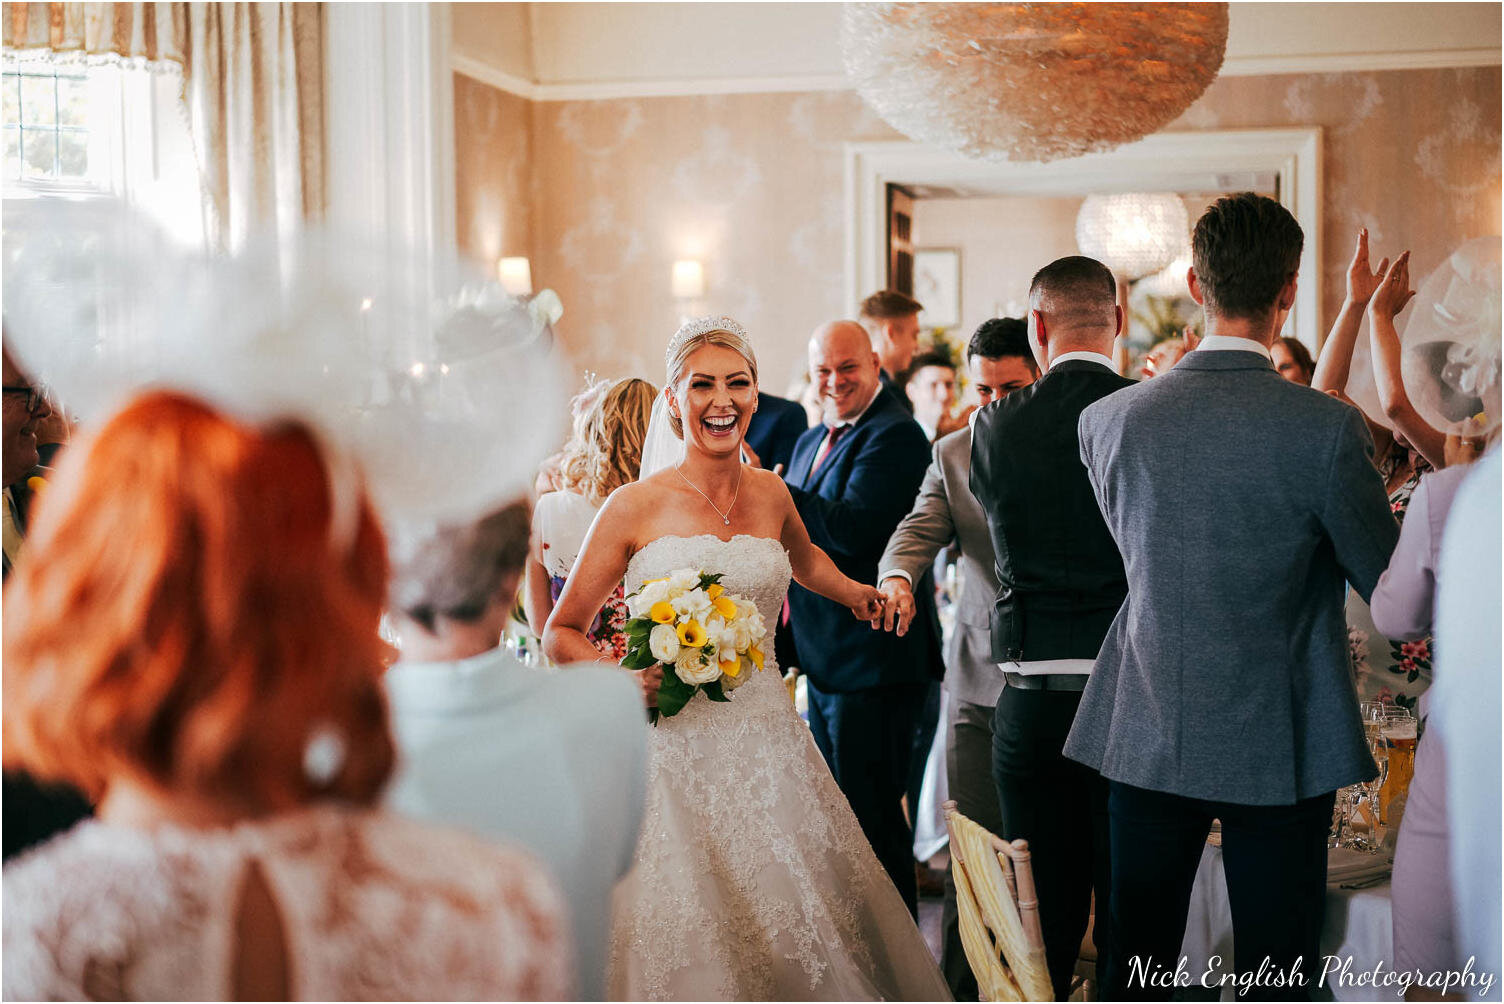 Falcon_Manor_Yorkshire_Wedding_Photographer-80.jpg